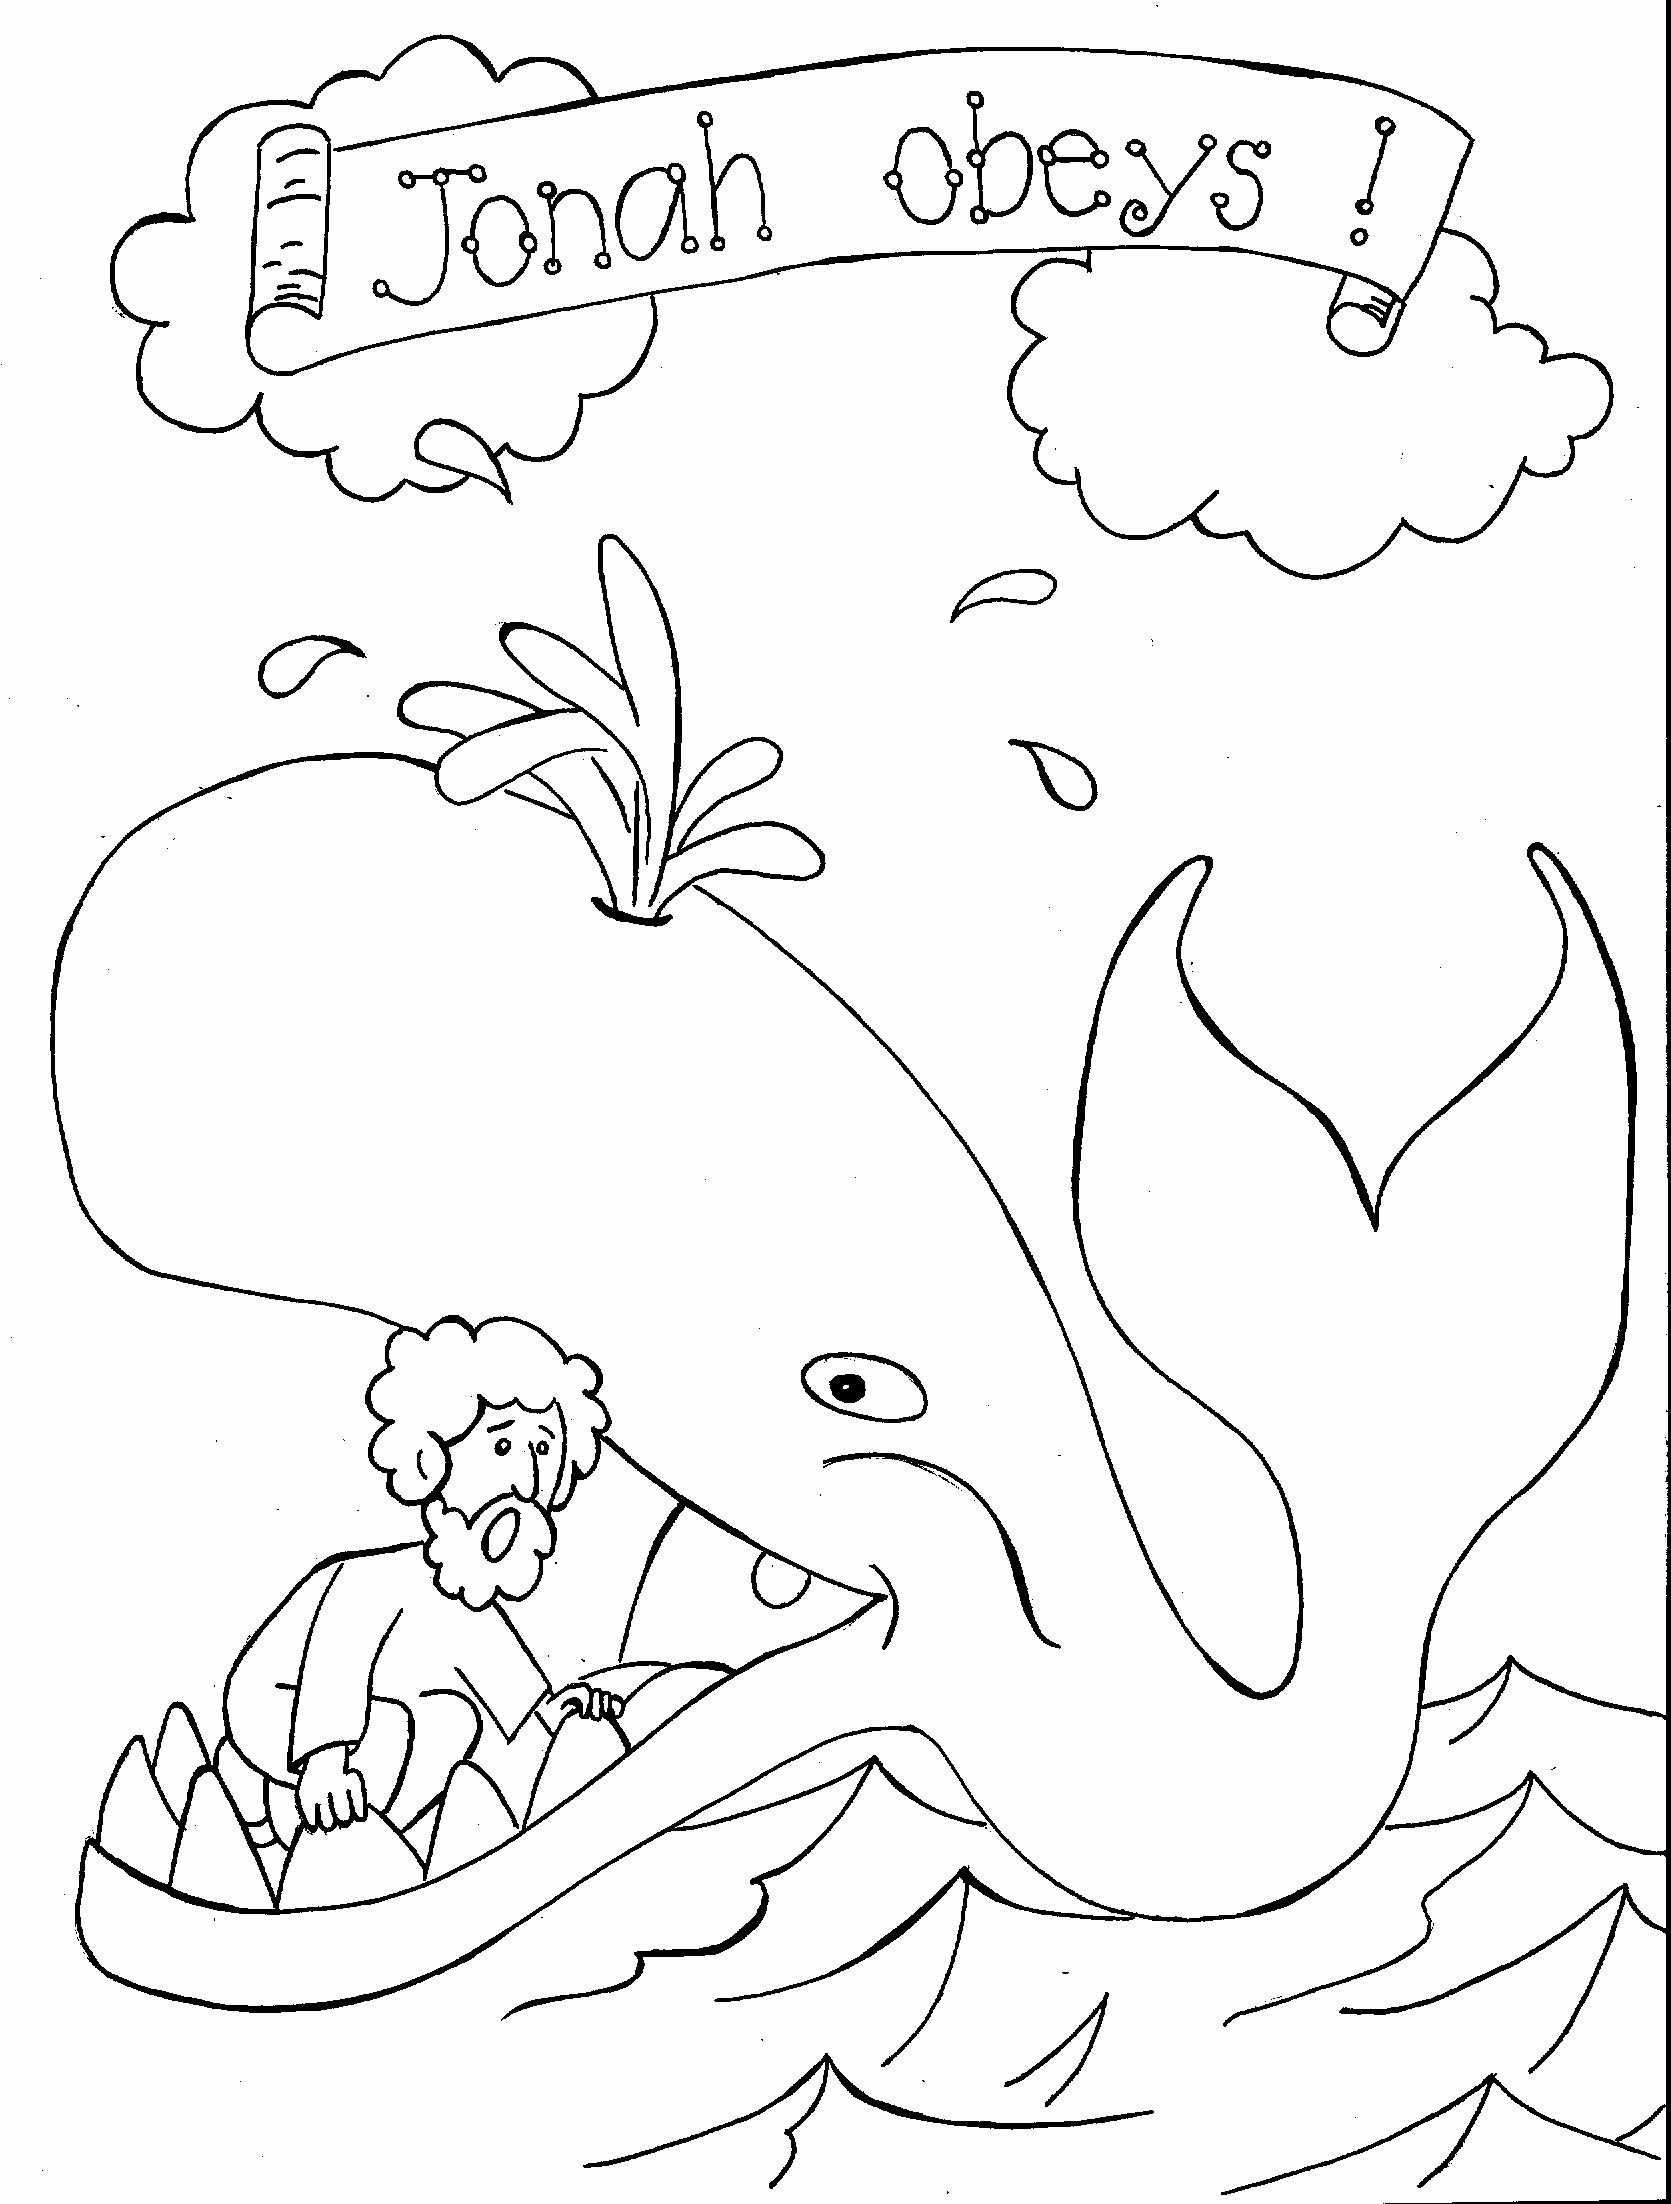 bible coloring pages free Collection-Bible Verses Coloring Pages Amazing Bible Coloring Pages Free 18-b